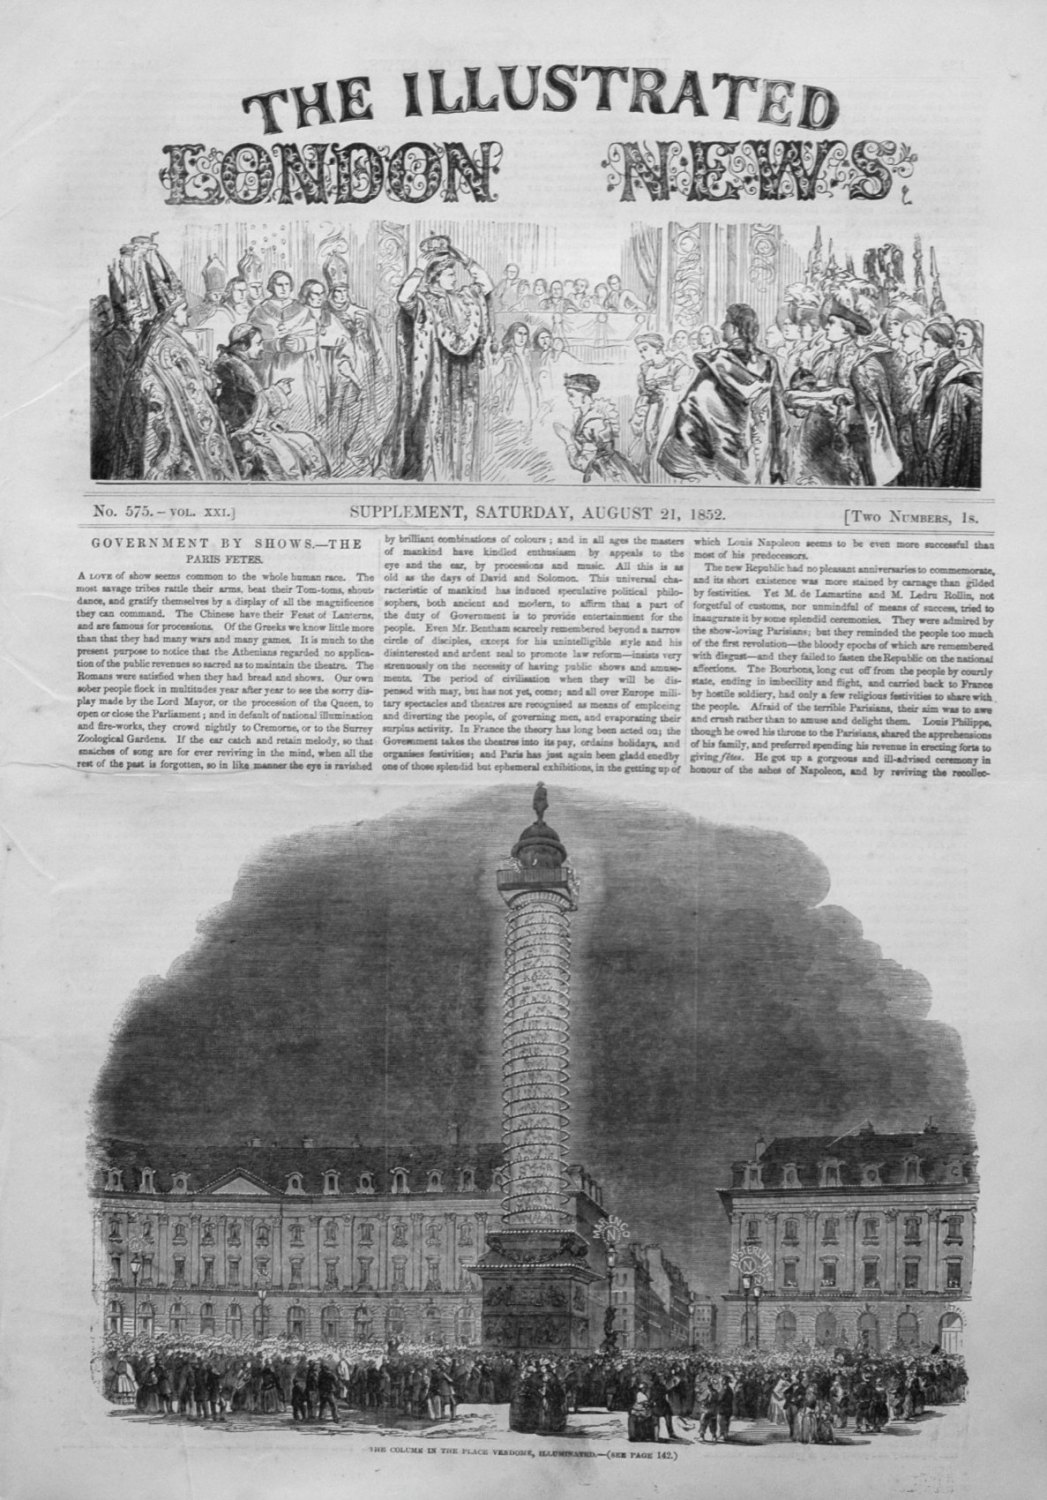 Illustrated London News (Supplement) for August 21st 1852.